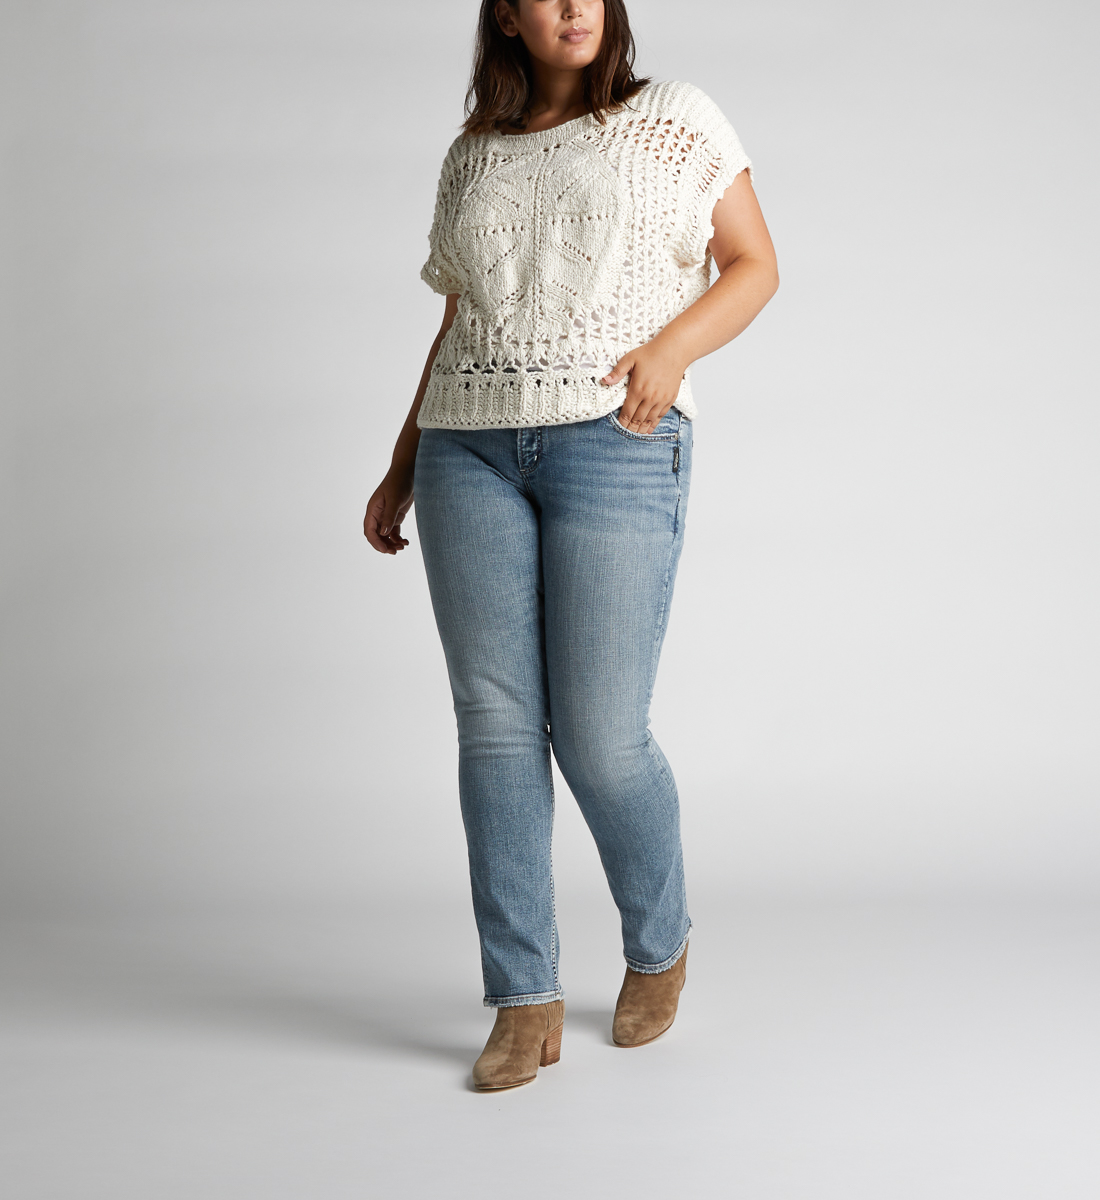 Silver Jeans Co Womens Plus Size Suki Curvy Mid Rise Straight Fit Jeans